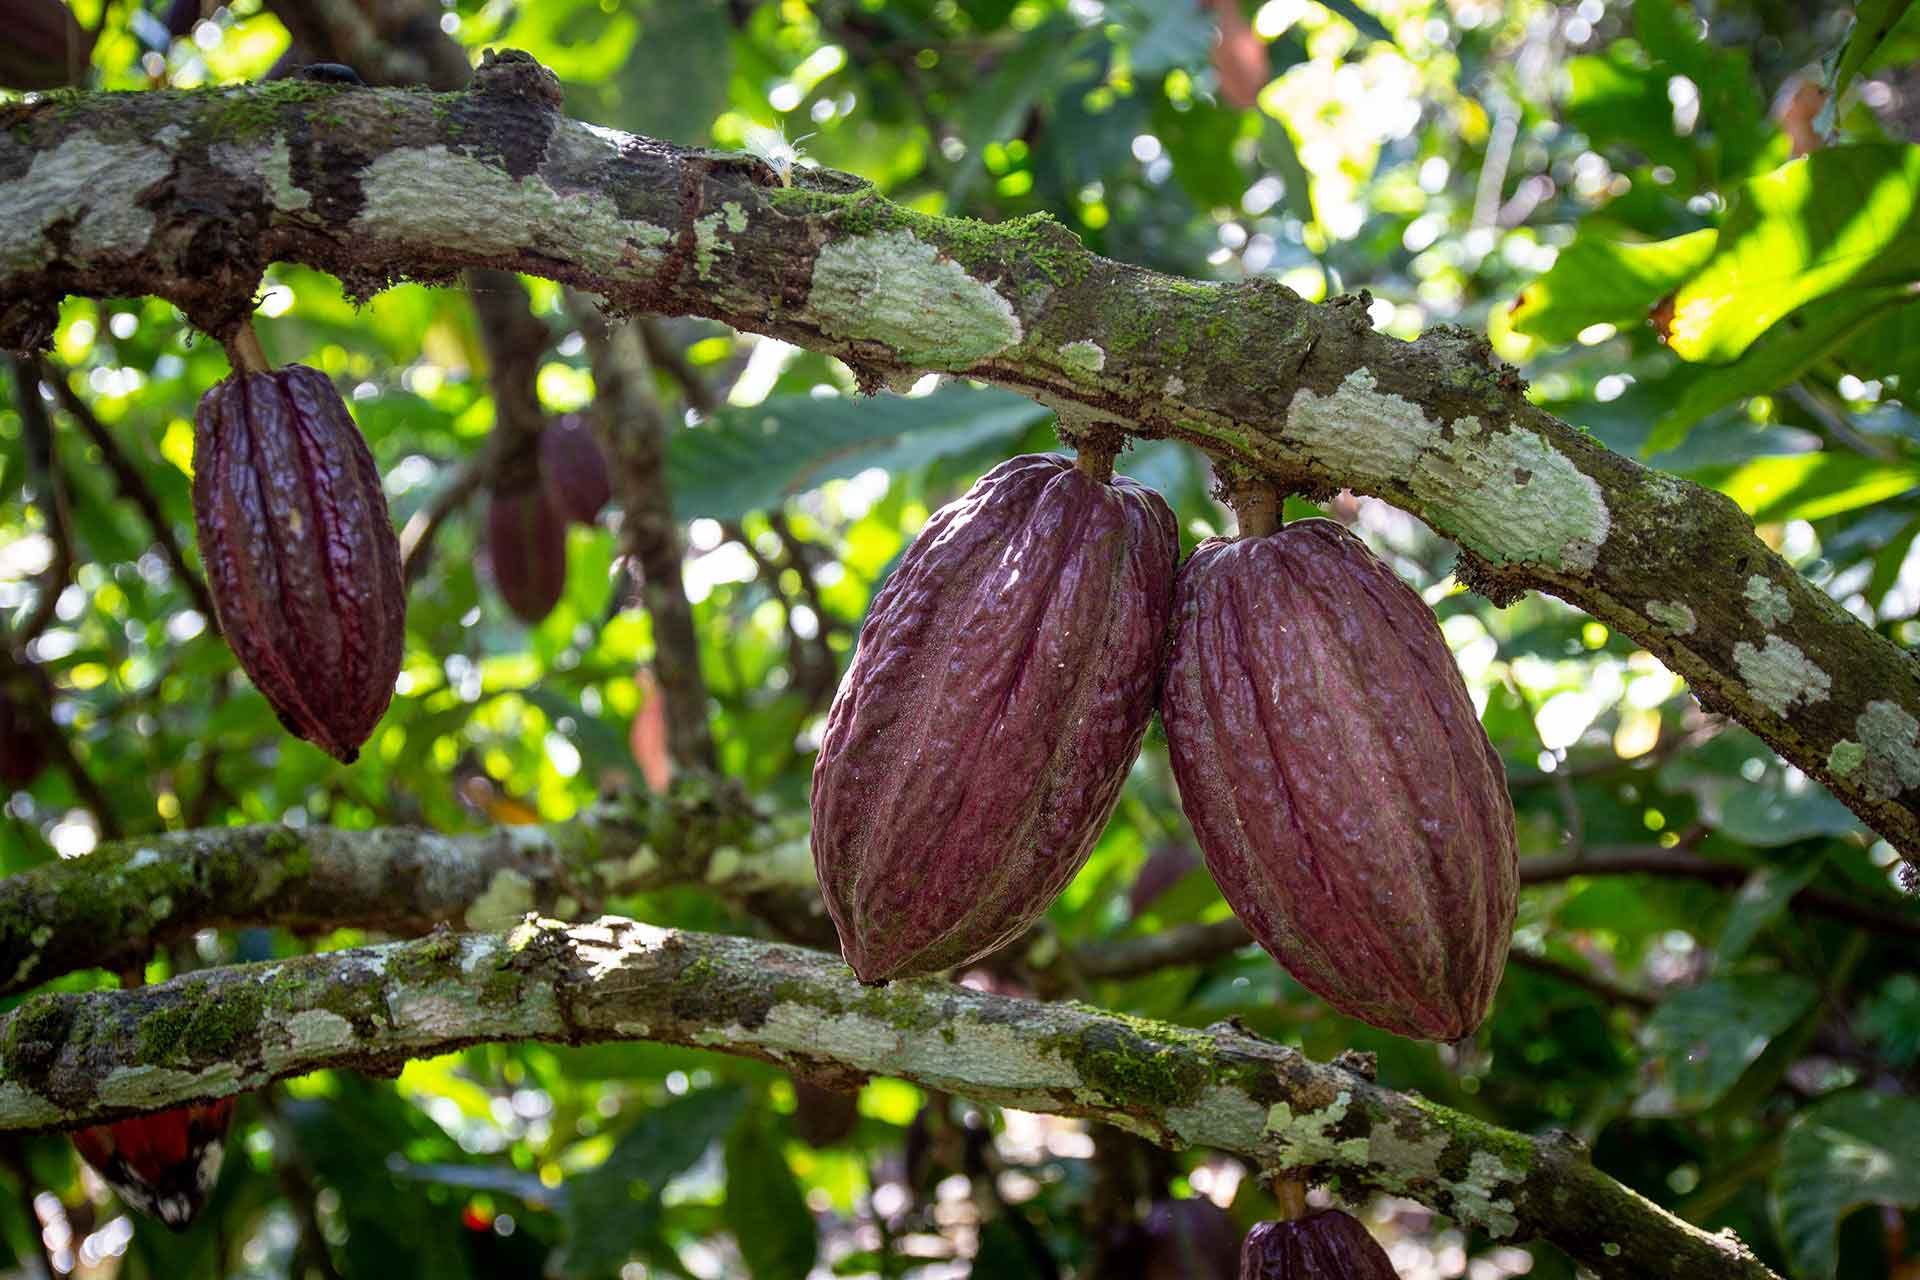 Cacao experts, Originalbeans Interview: CafCaf Stories. CafCaf – Kaffee & Blog, Kaffeeblog